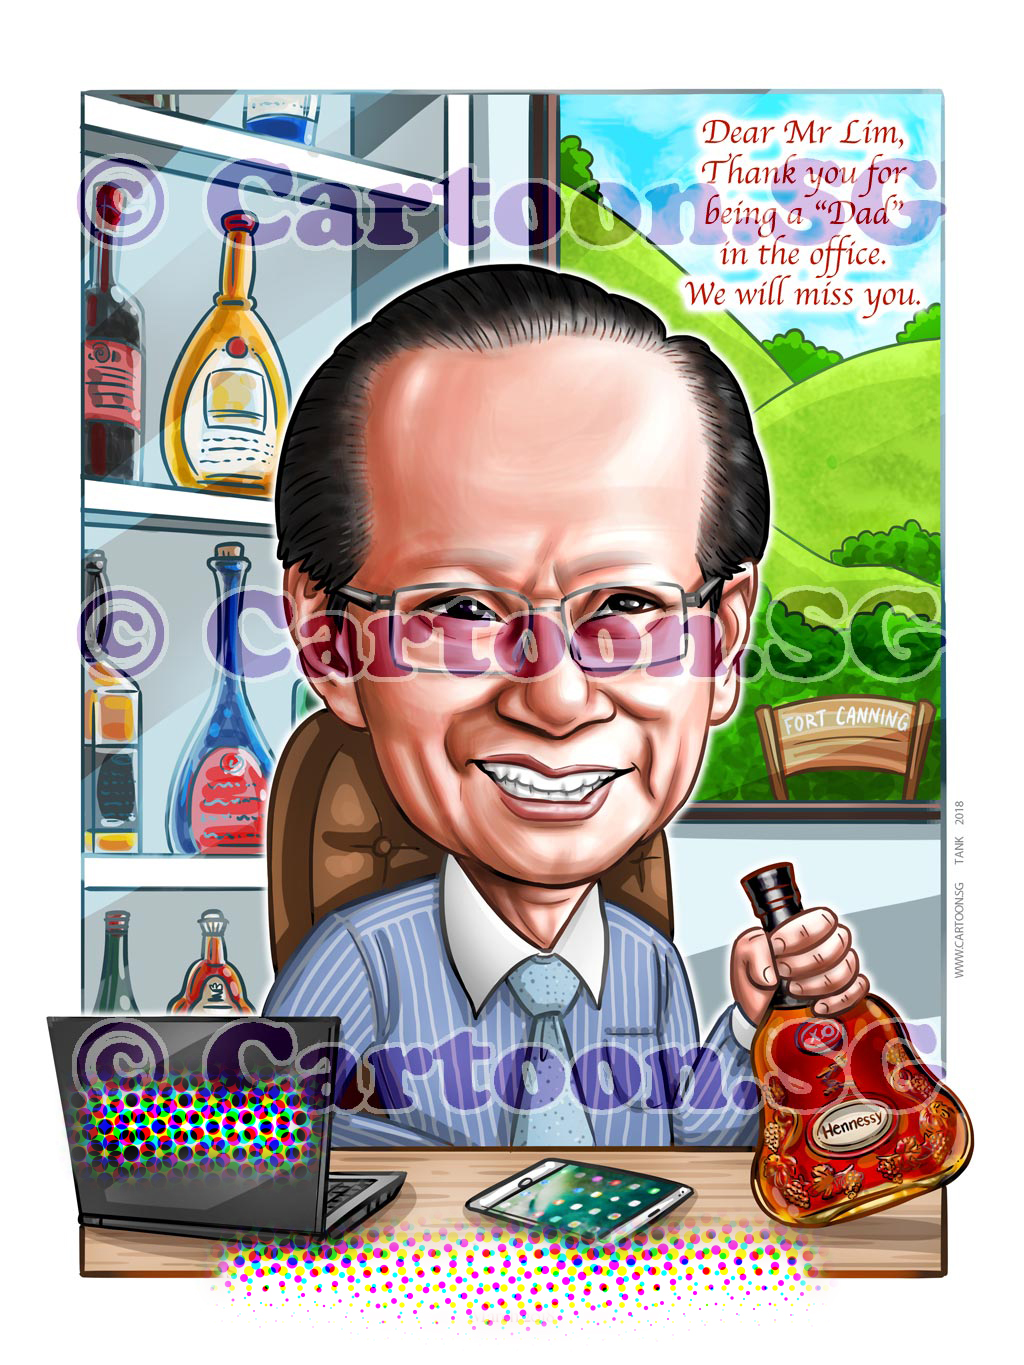 20180317-Caricature-Singapore-digital-boss-farewell-bottles-wine-alcohol-fort-canning.jpg